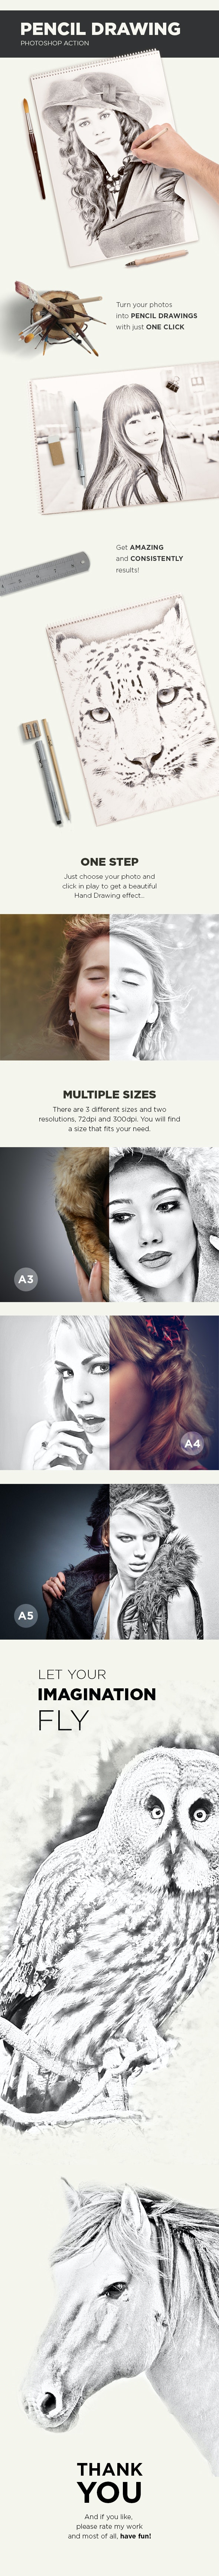 Pencil Drawing Photoshop Action - Photo Effects Actions